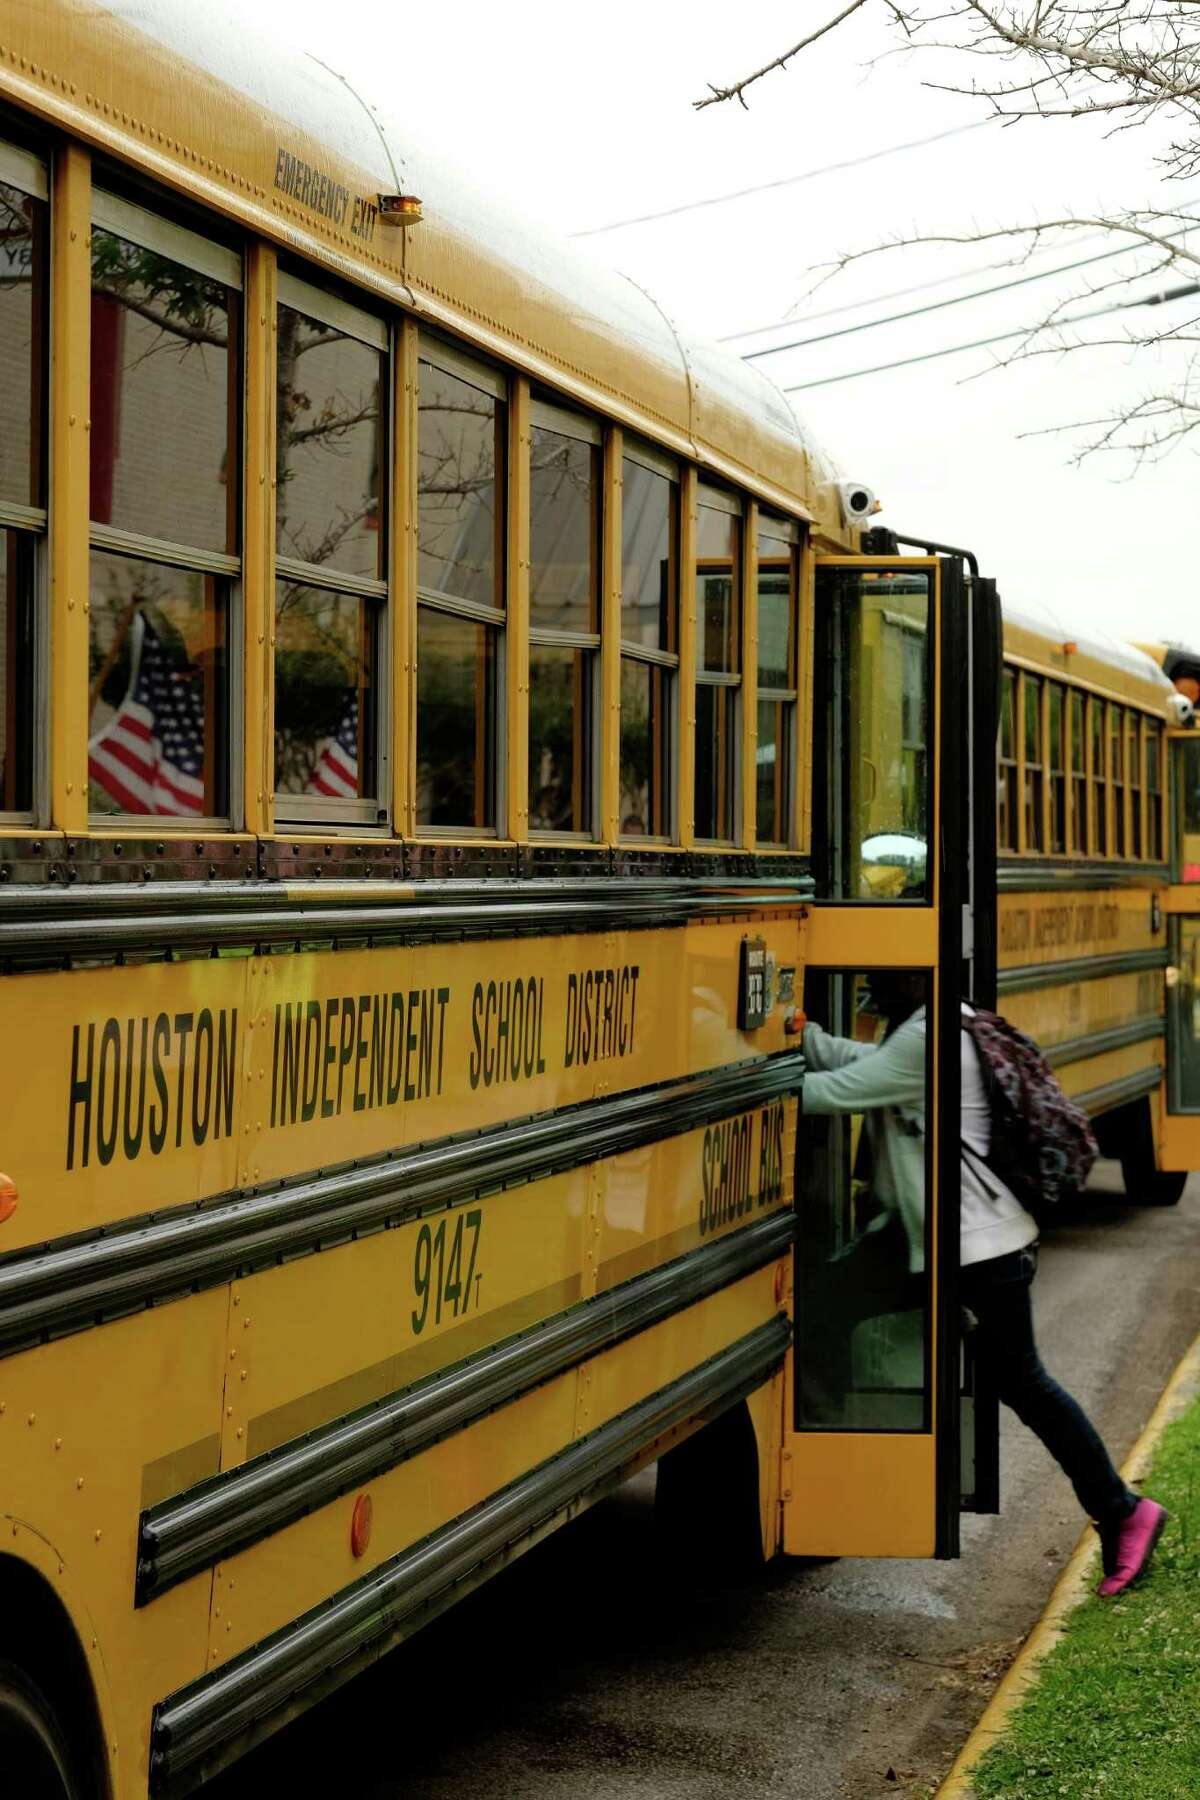 With the Texas Supreme Court ruling on May 13 punting the issue of school funding back to the Legislature, will lawmakers do the right thing?